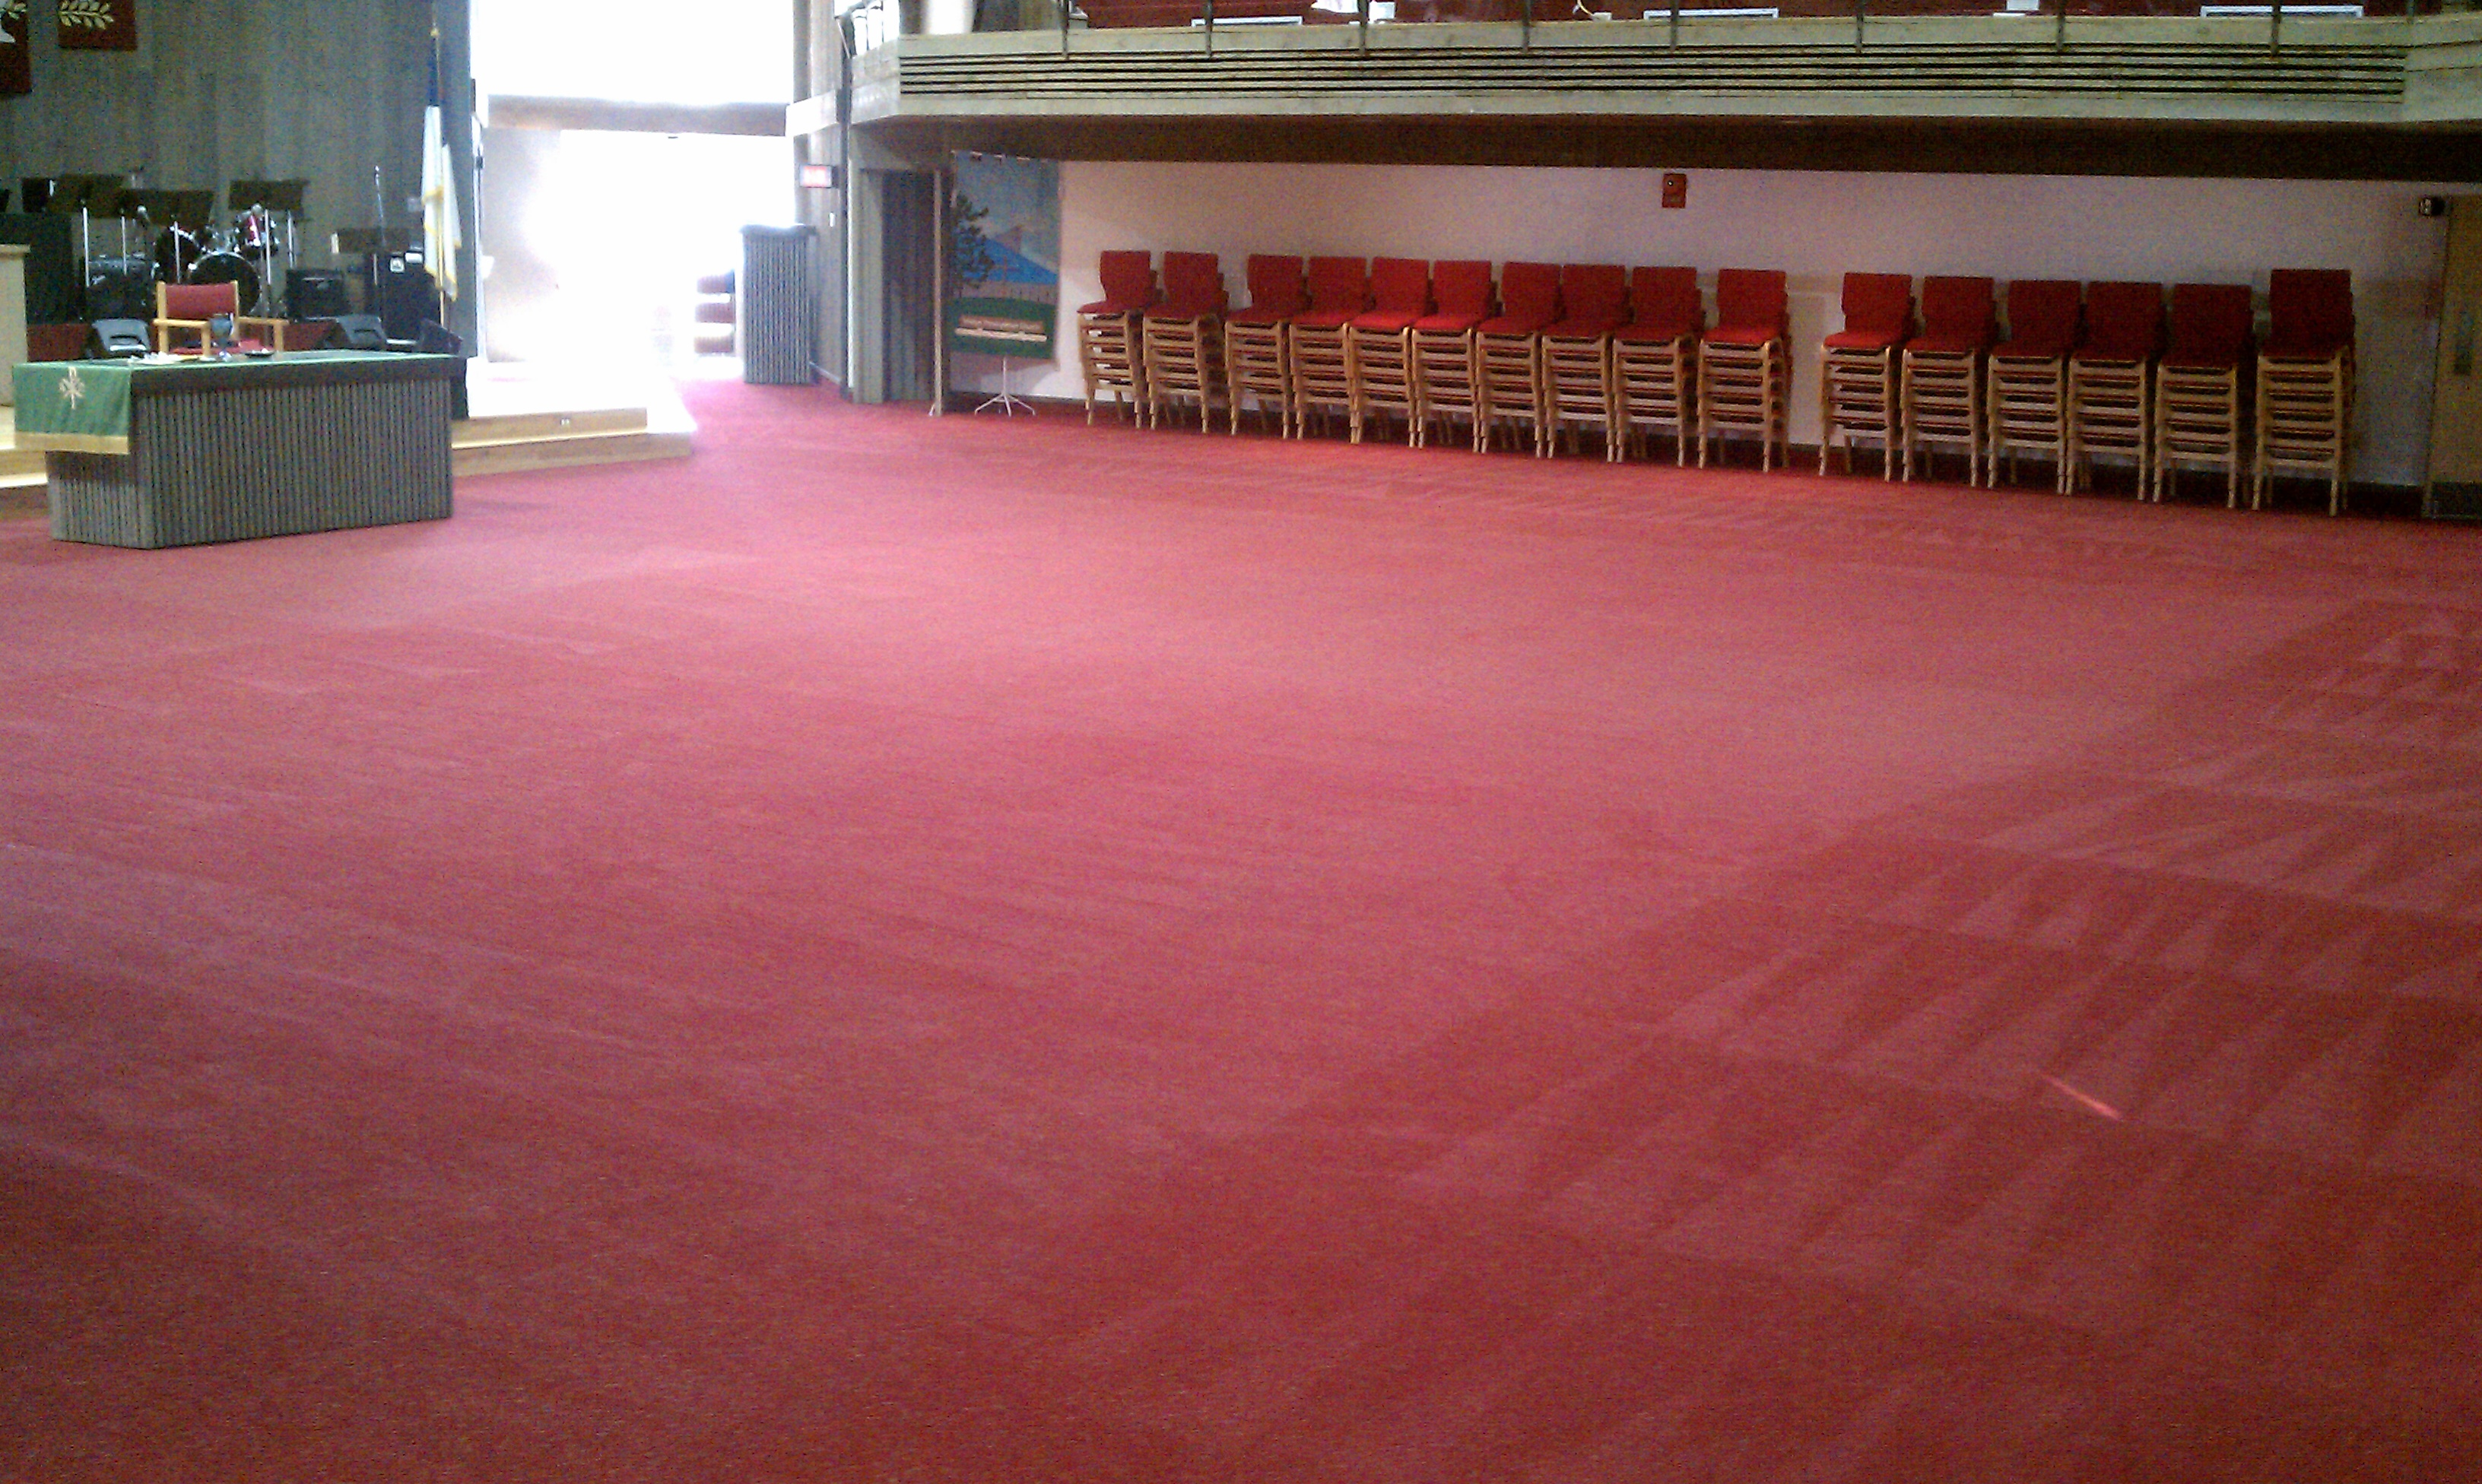 Commercial carpet tile cleaning surfacesolve cleaning for Commercial flooring